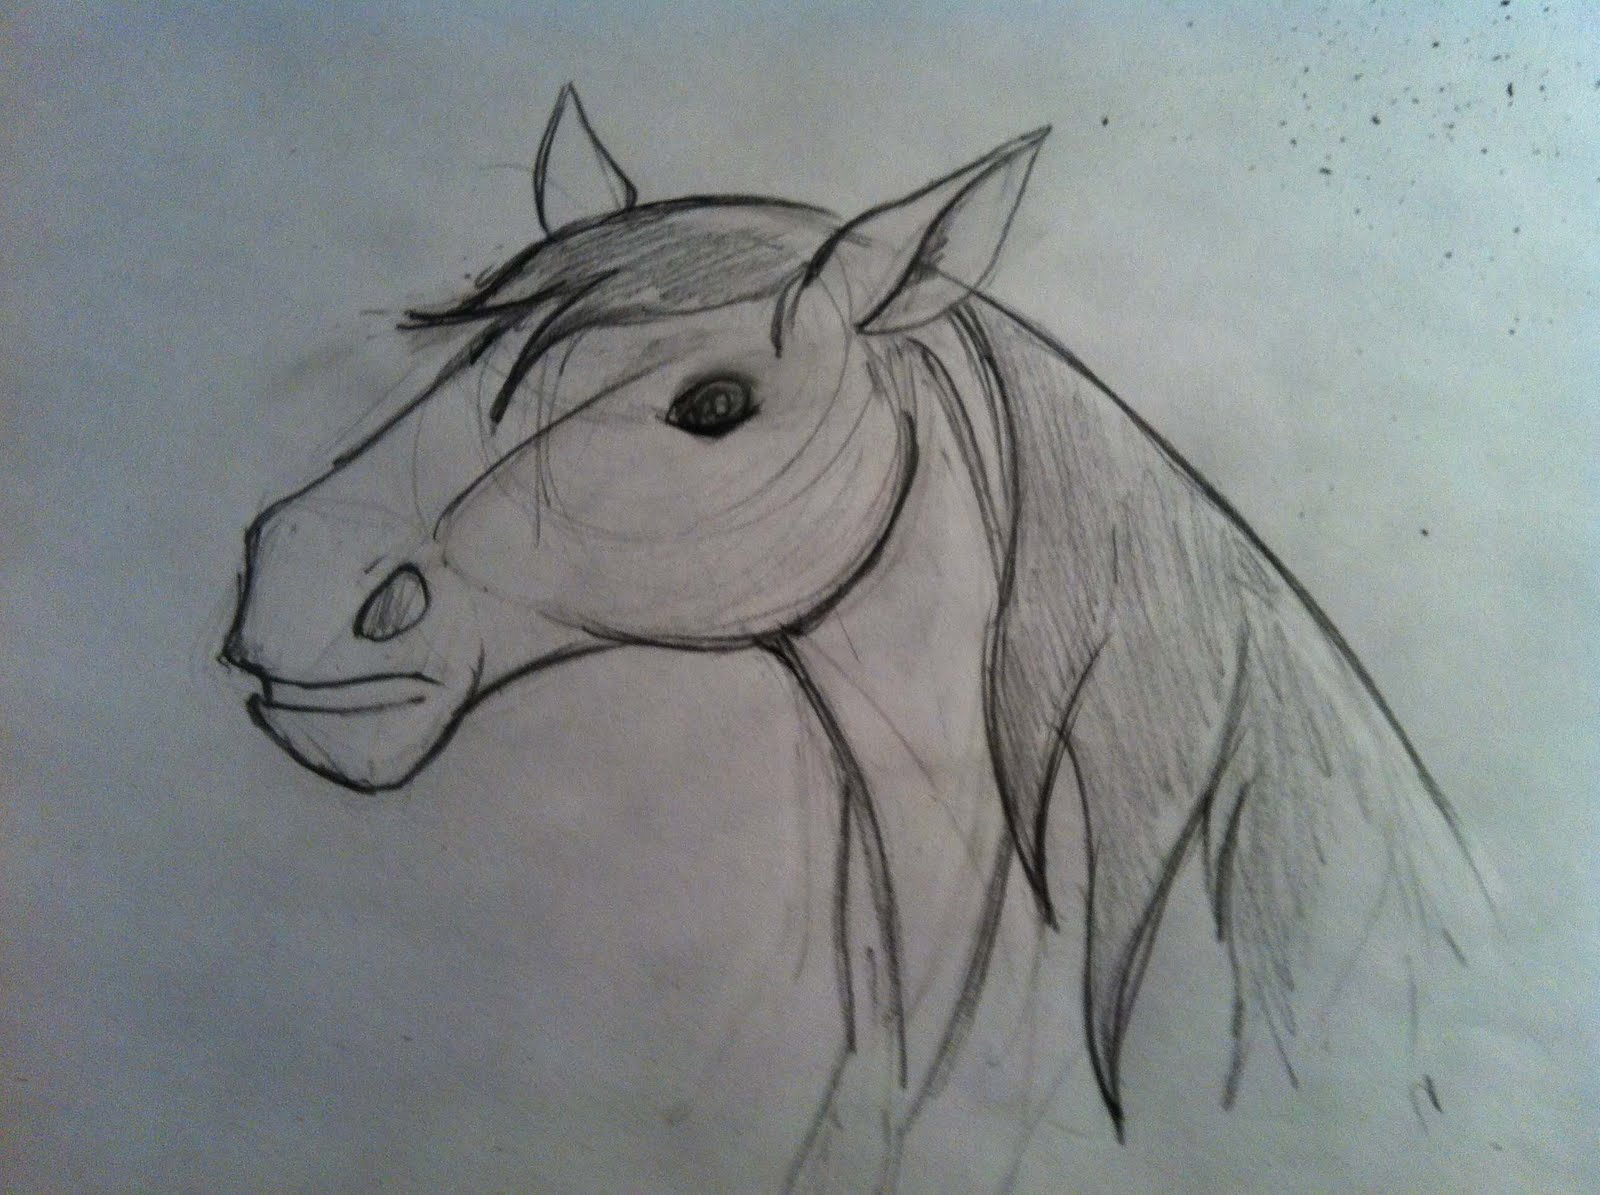 A Million Bad Drawings: Another Horse Attempt! Bad Drawing